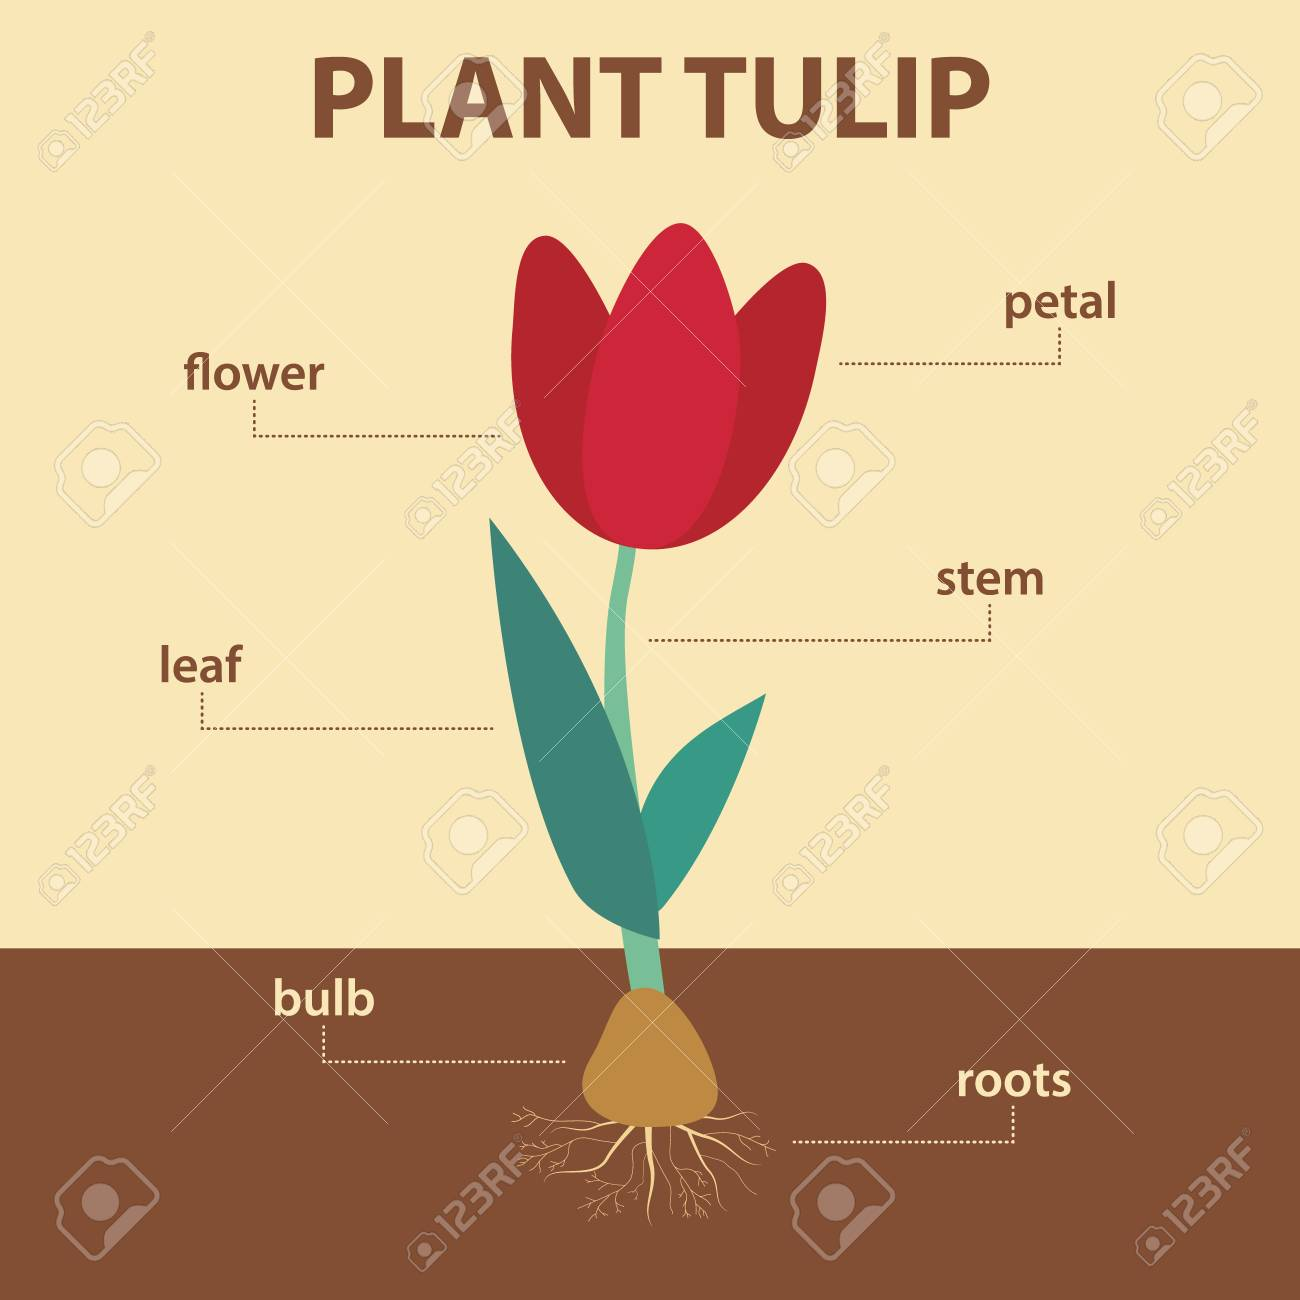 flower parts diagram without labels trailer wiring 7 pin 5 wires australia showing of tulip whole plant agricultural infographic scheme with for education